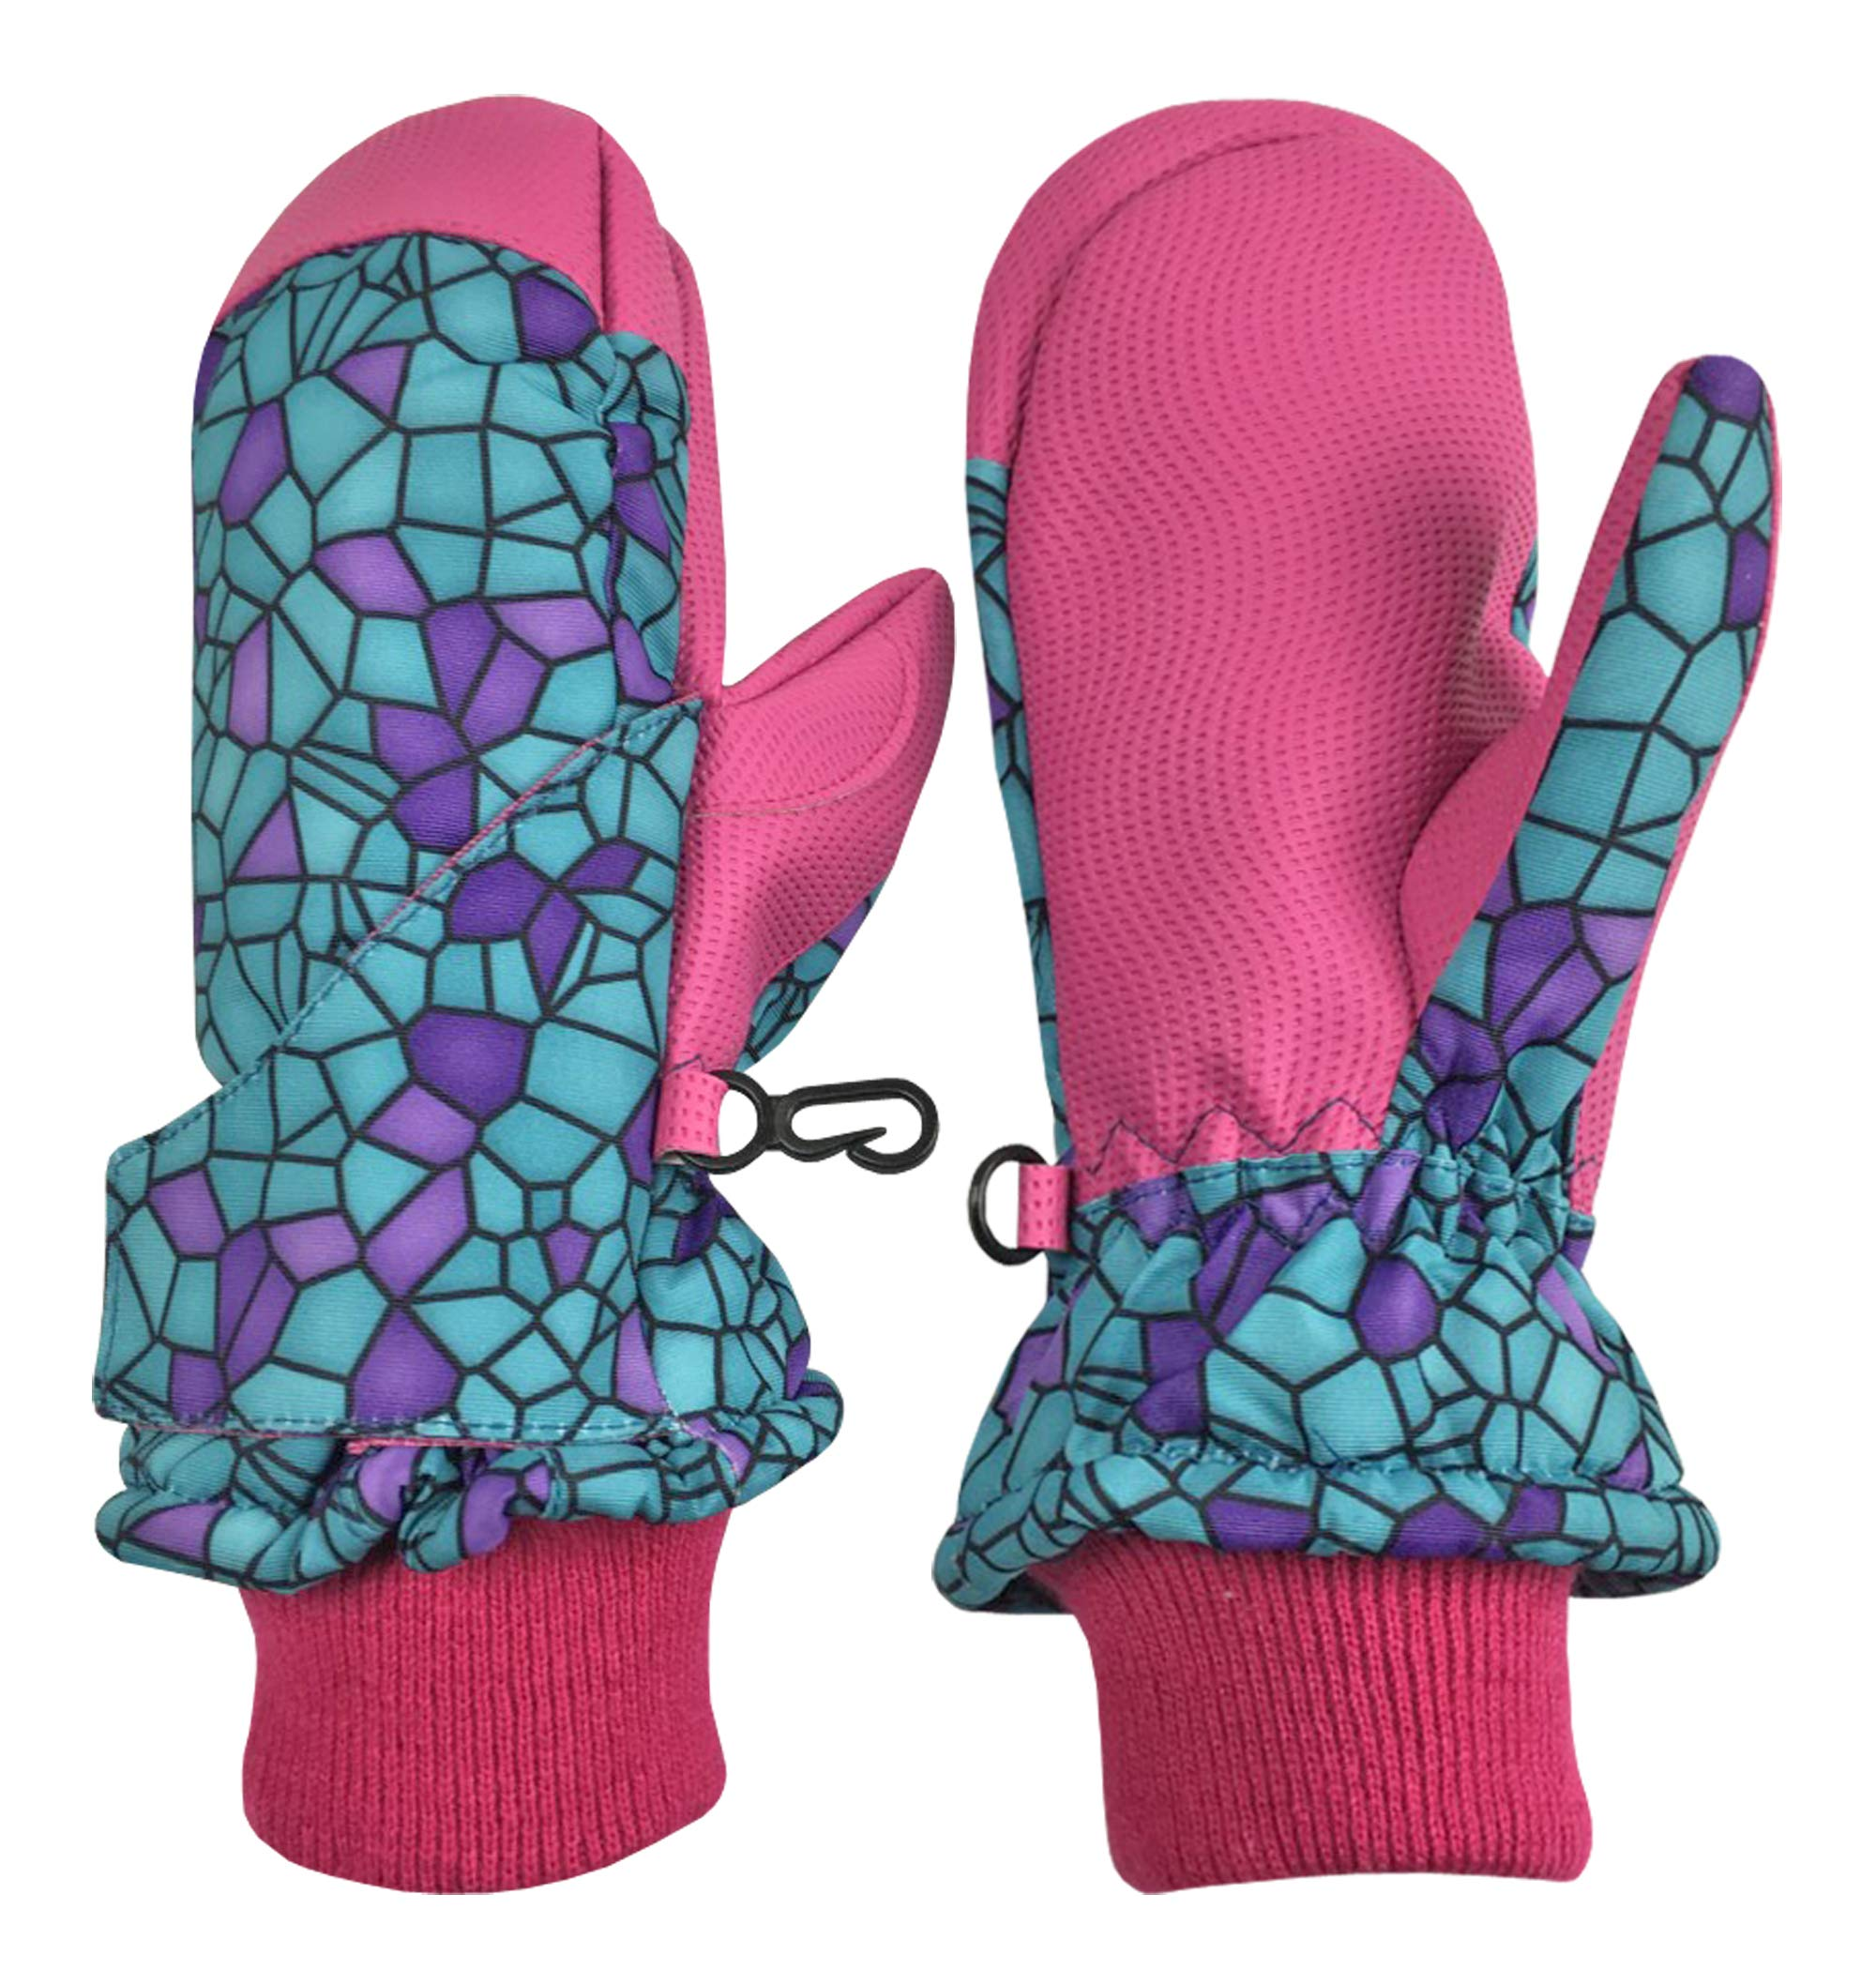 N'Ice Caps Kids and Baby Easy-On Wrap Waterproof Thinsulate Winter Snow Mitten (Turq Shattered Glass, 1-2 Years) by N'Ice Caps